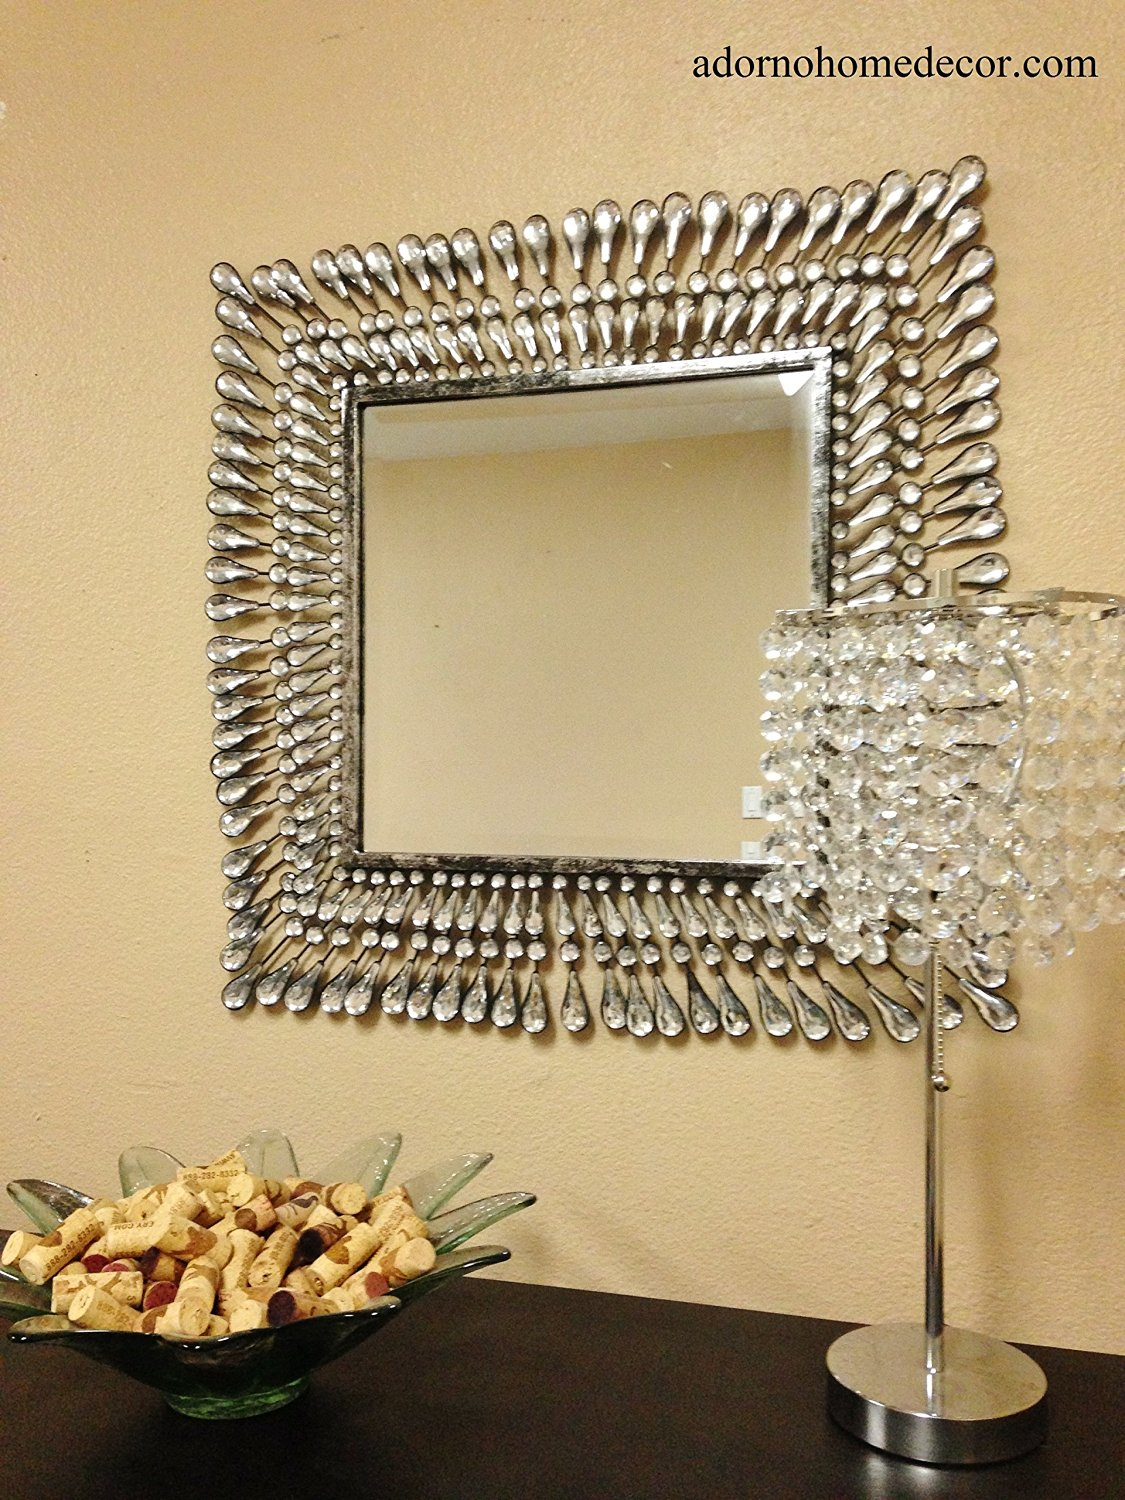 Buy Metal Wall Square Crystal Mirror Rustic Modern Crystal Wall ...